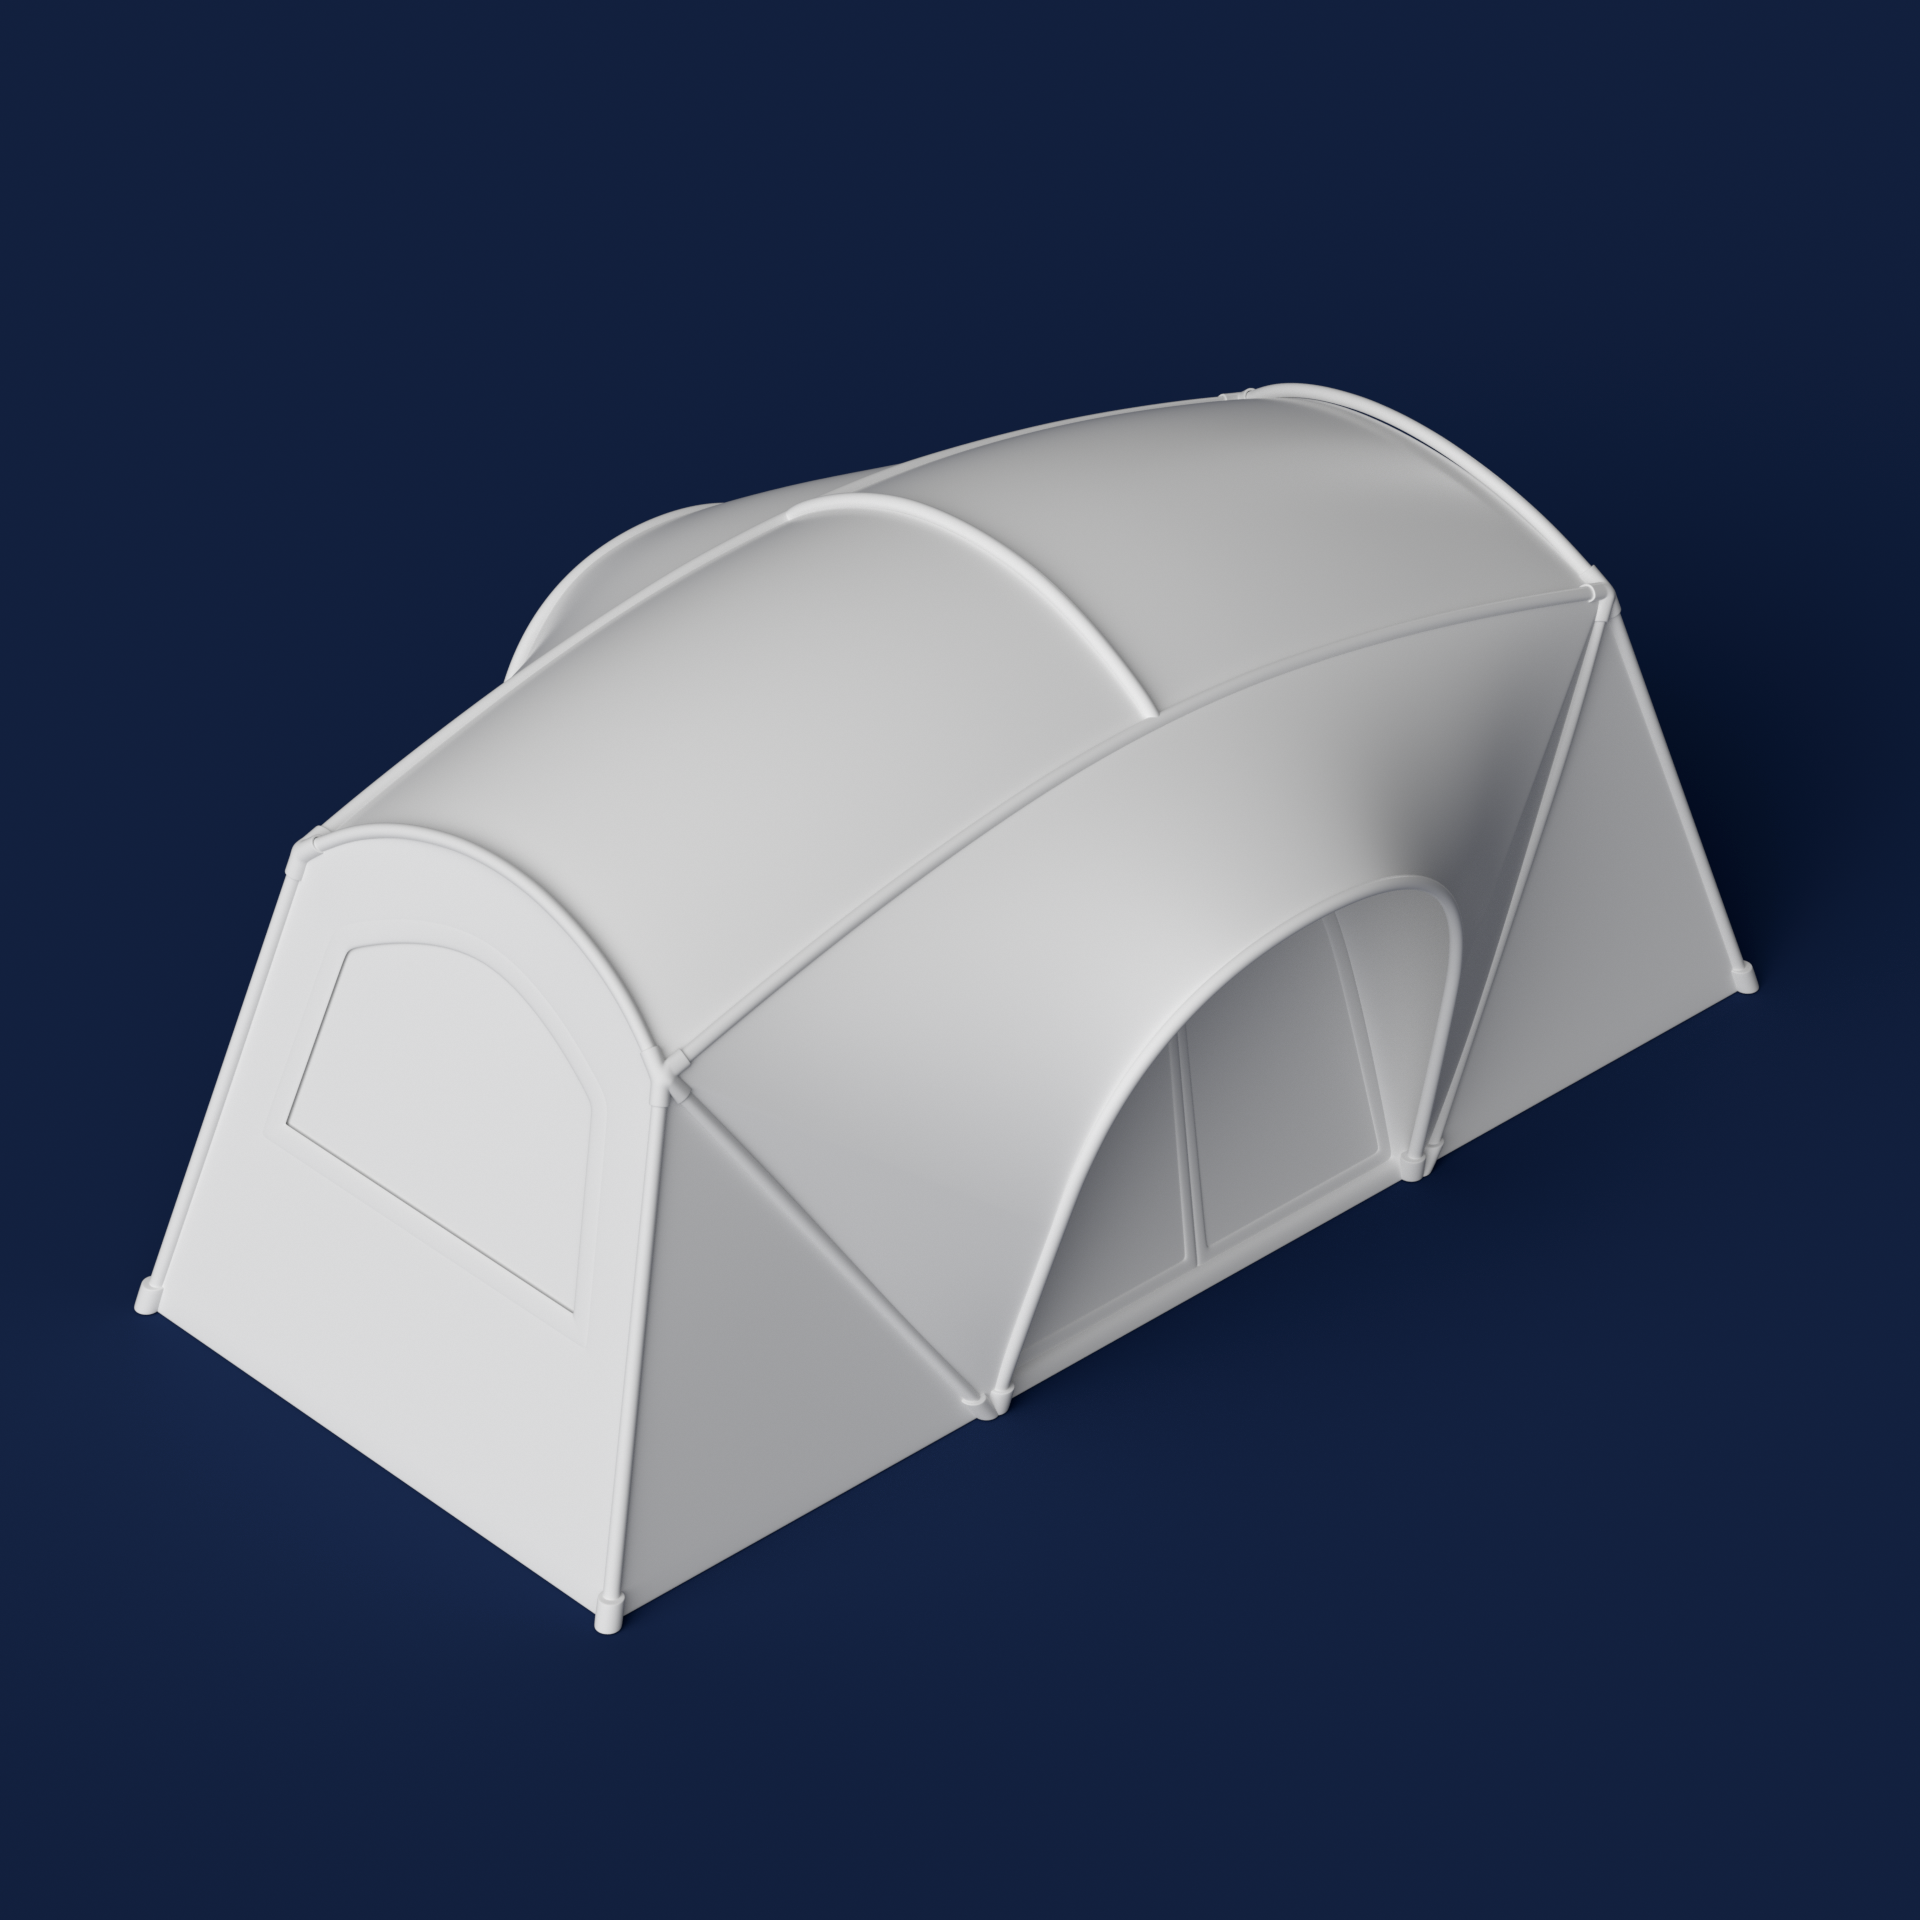 tent_2.png